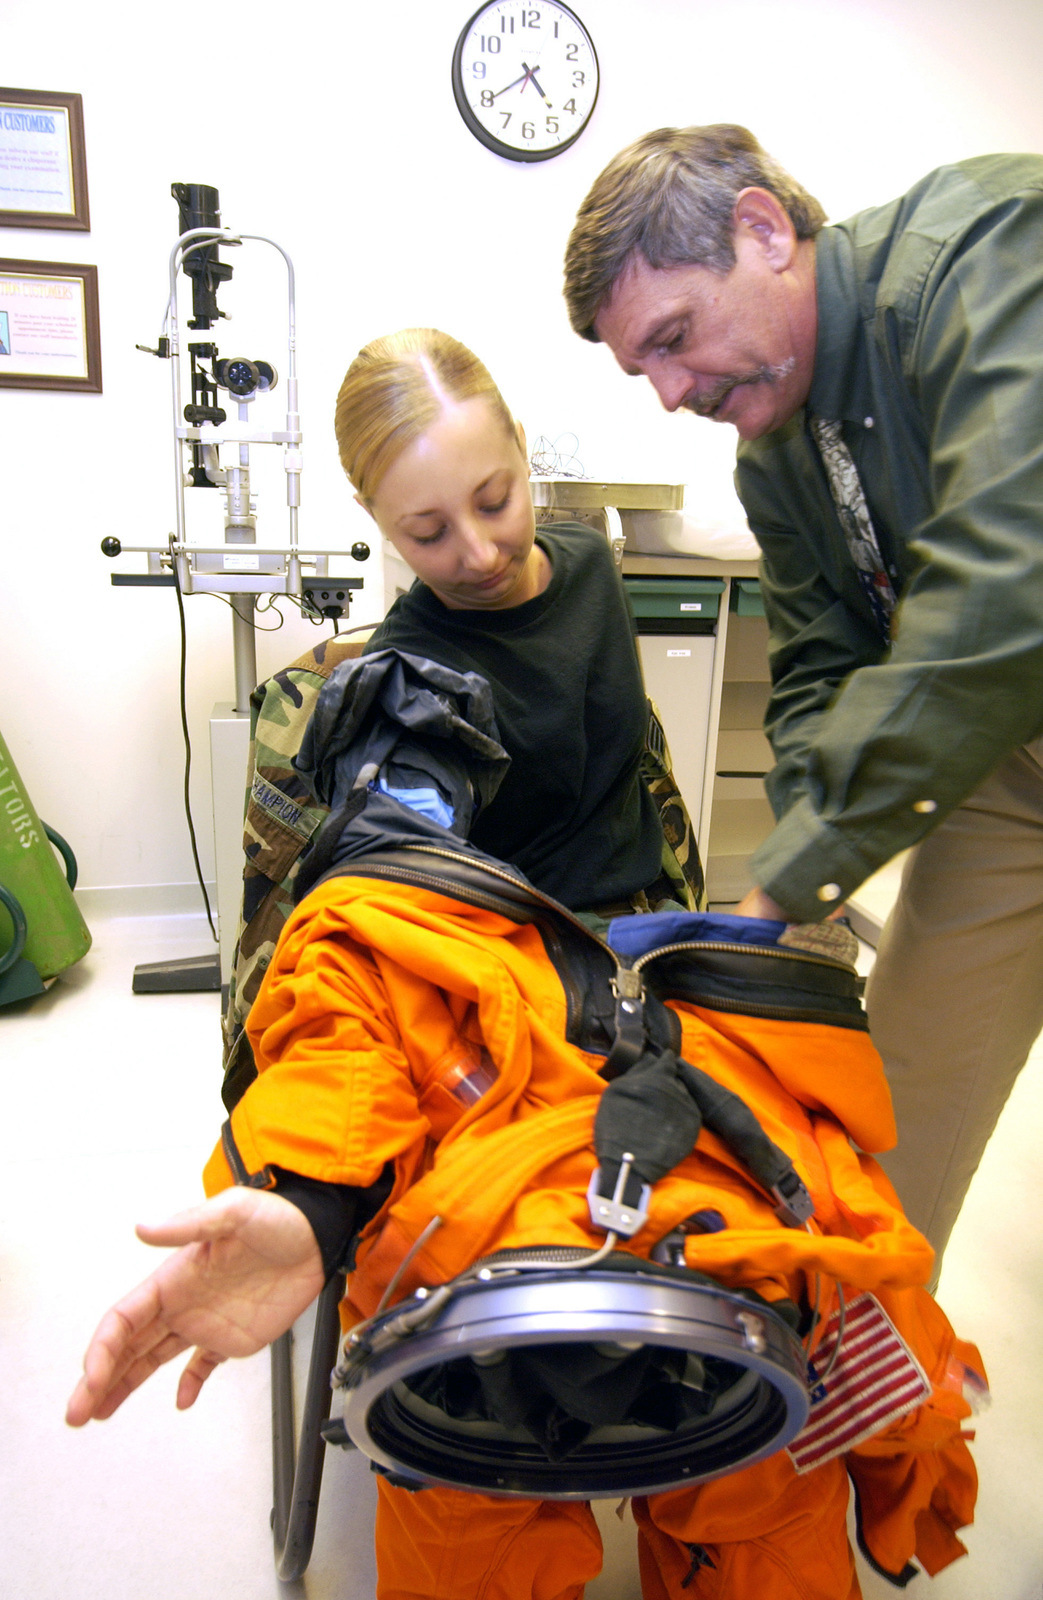 US Air Force (USAF) SENIOR AIRMAN (SRA) Jennifer Champion, 65th Medical Group, gets assistance from a National Aeronautics and Space Administration (NASA) Instructor, as she suits up in an authentic NASA spacesuit, at Lajes Field, Azores, Portugal. SRA Champion is one of several medical personnel receiving specialized training from members of the Department of Defense (DOD), Space Flight Support Office. Training is vital to Lajes medical personnel, due to the fact that it is one of the alternate emergency landing sites for the Space Shuttle